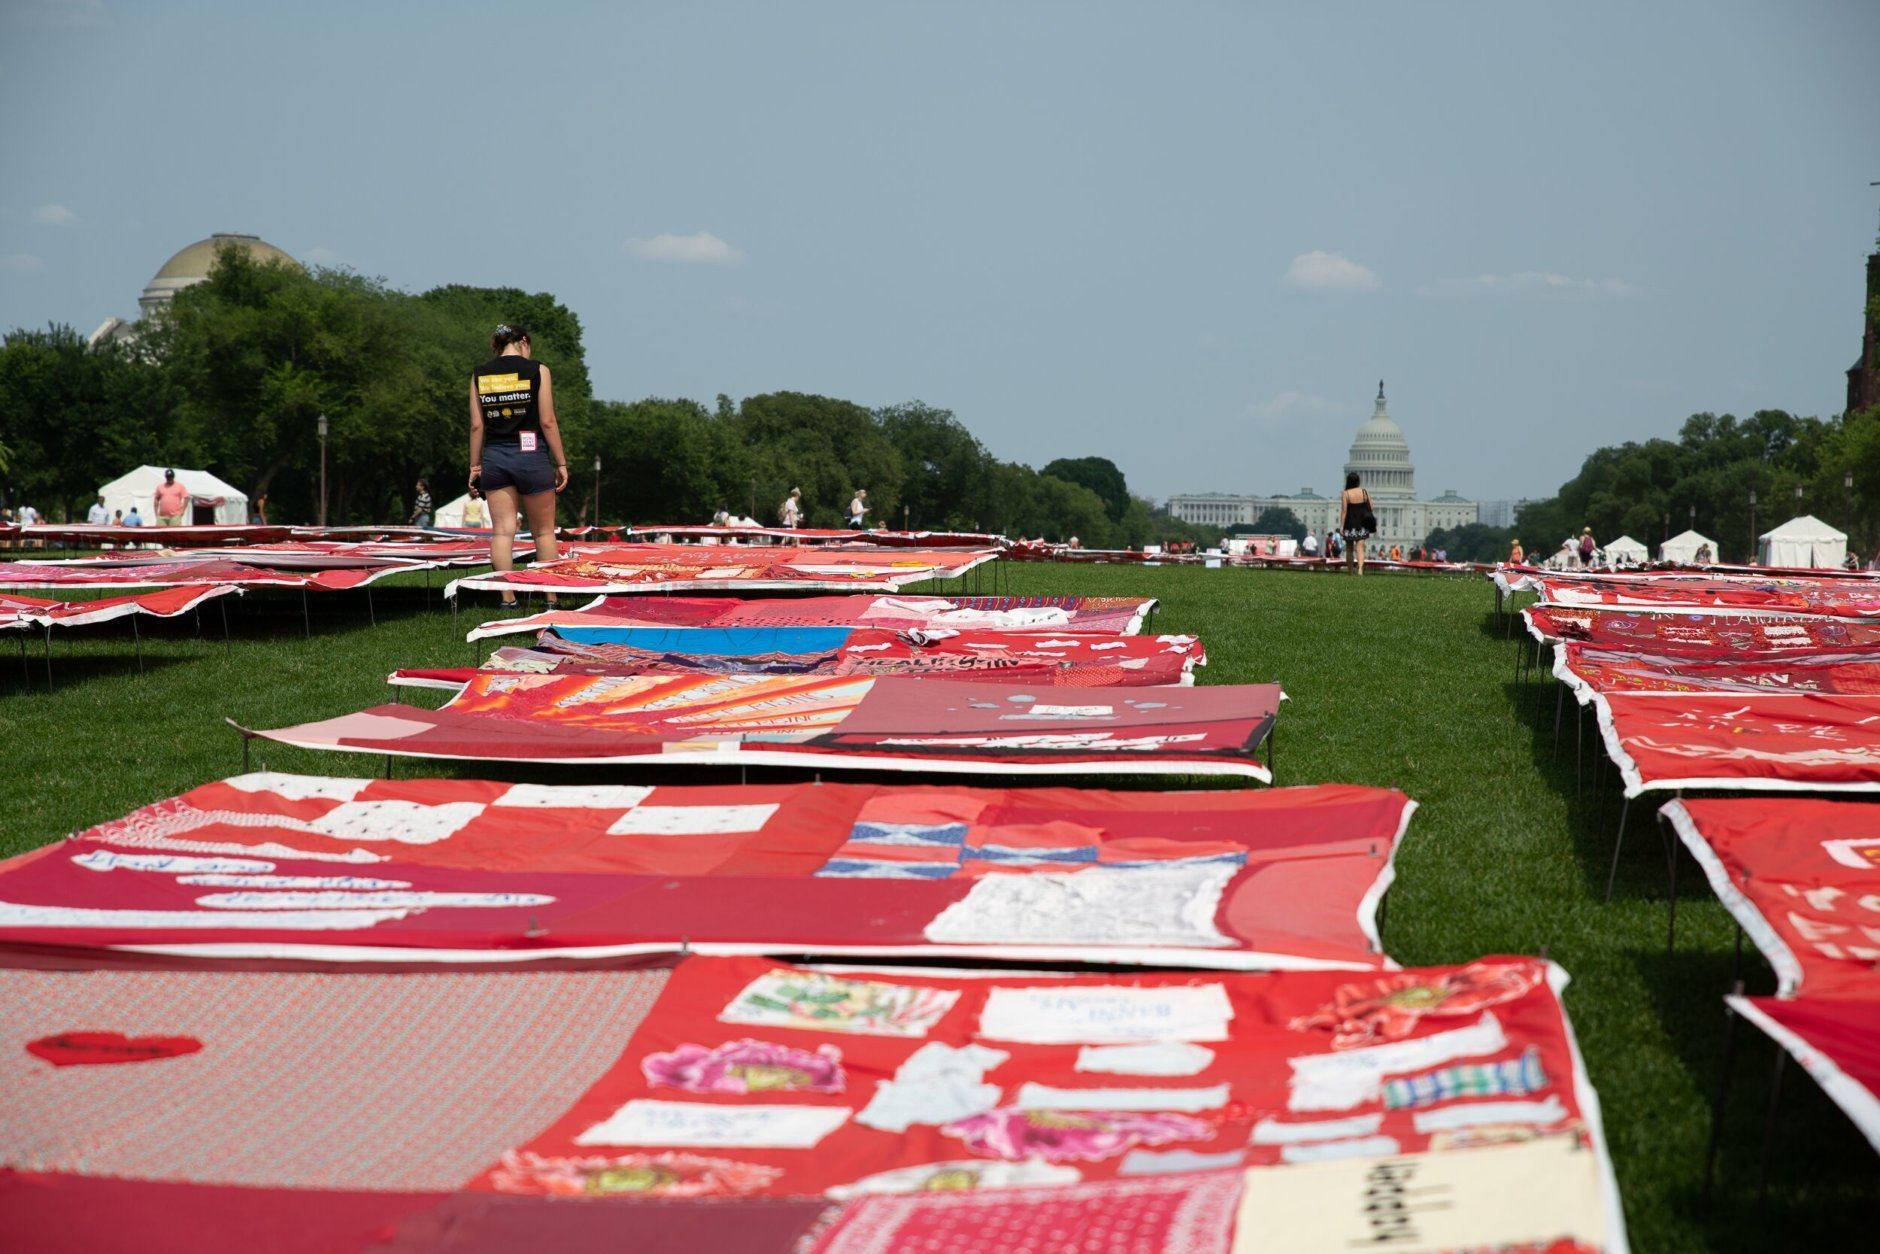 The quilts stretched out along the National Mall with the Capitol Building in the background. (WTOP/Alejandro Alvarez)